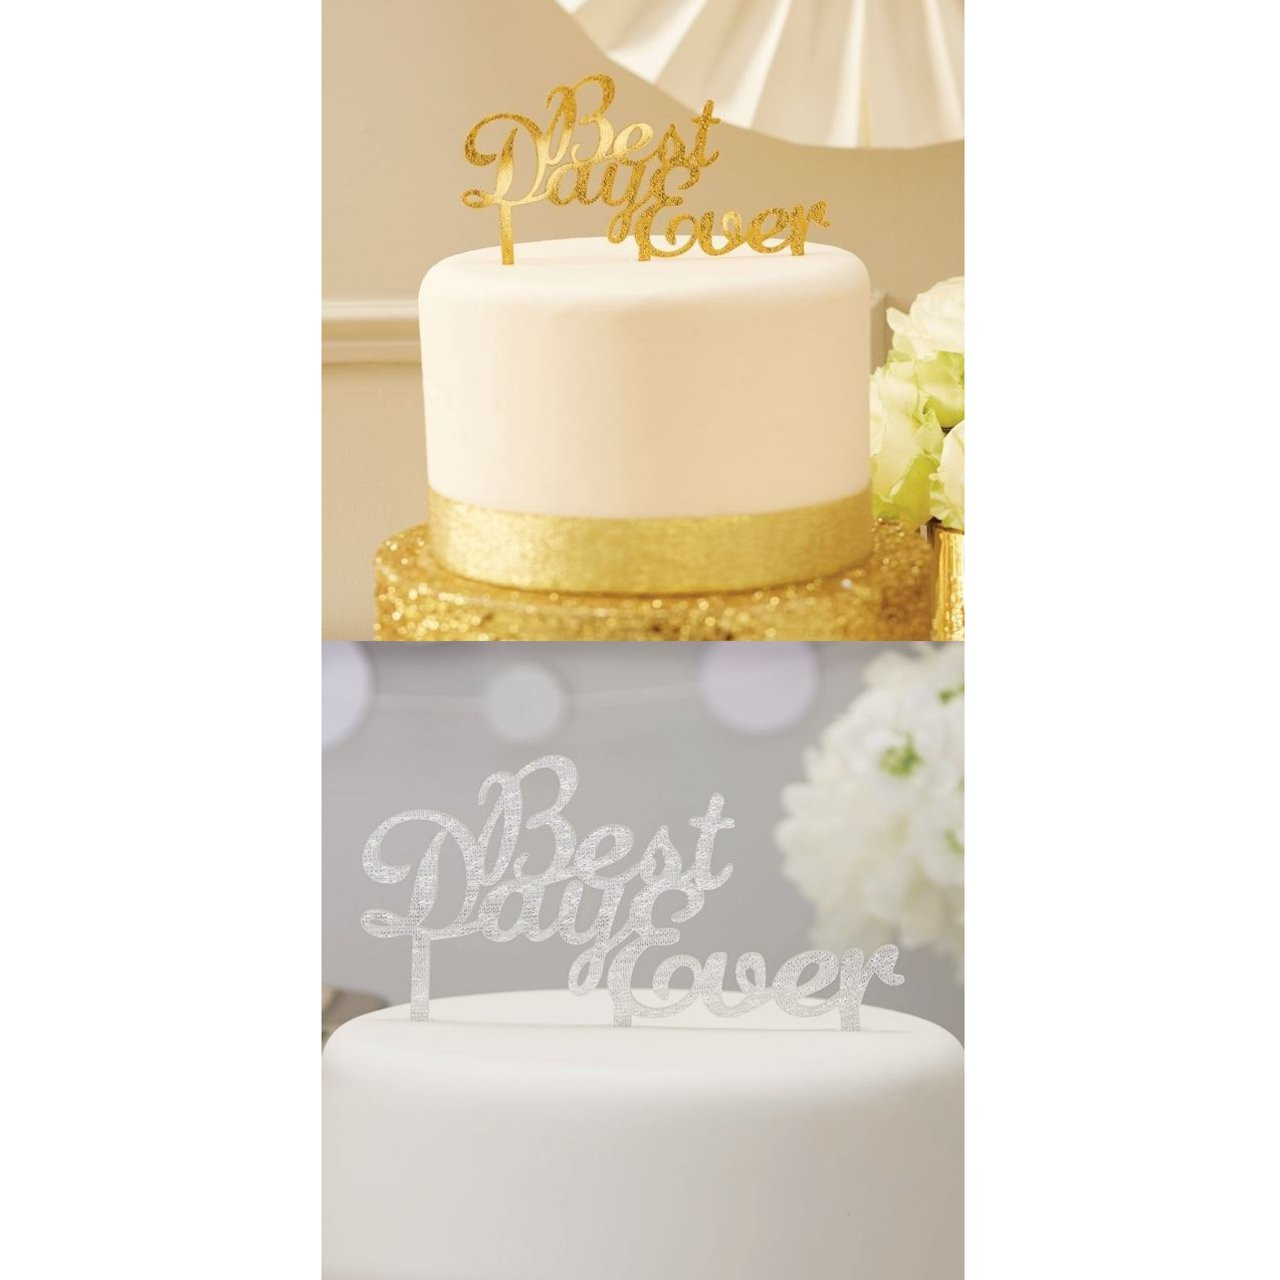 Best Day Ever Wedding Cake Topper | Cake Decorations